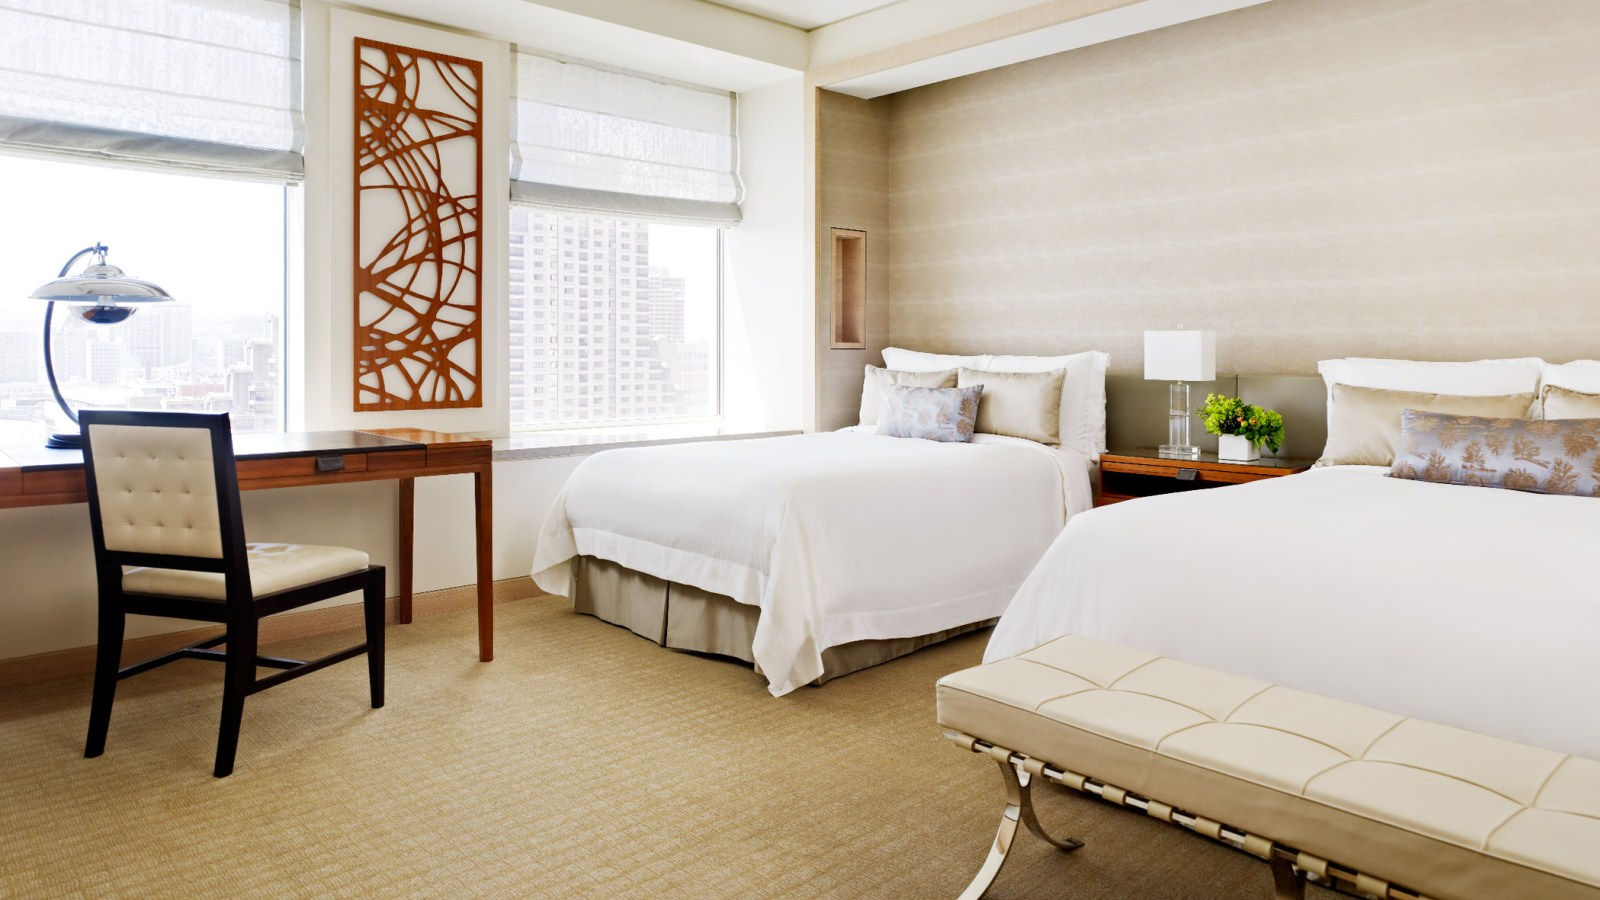 luxury 5 star hotel rooms in san francisco | the st. regis san